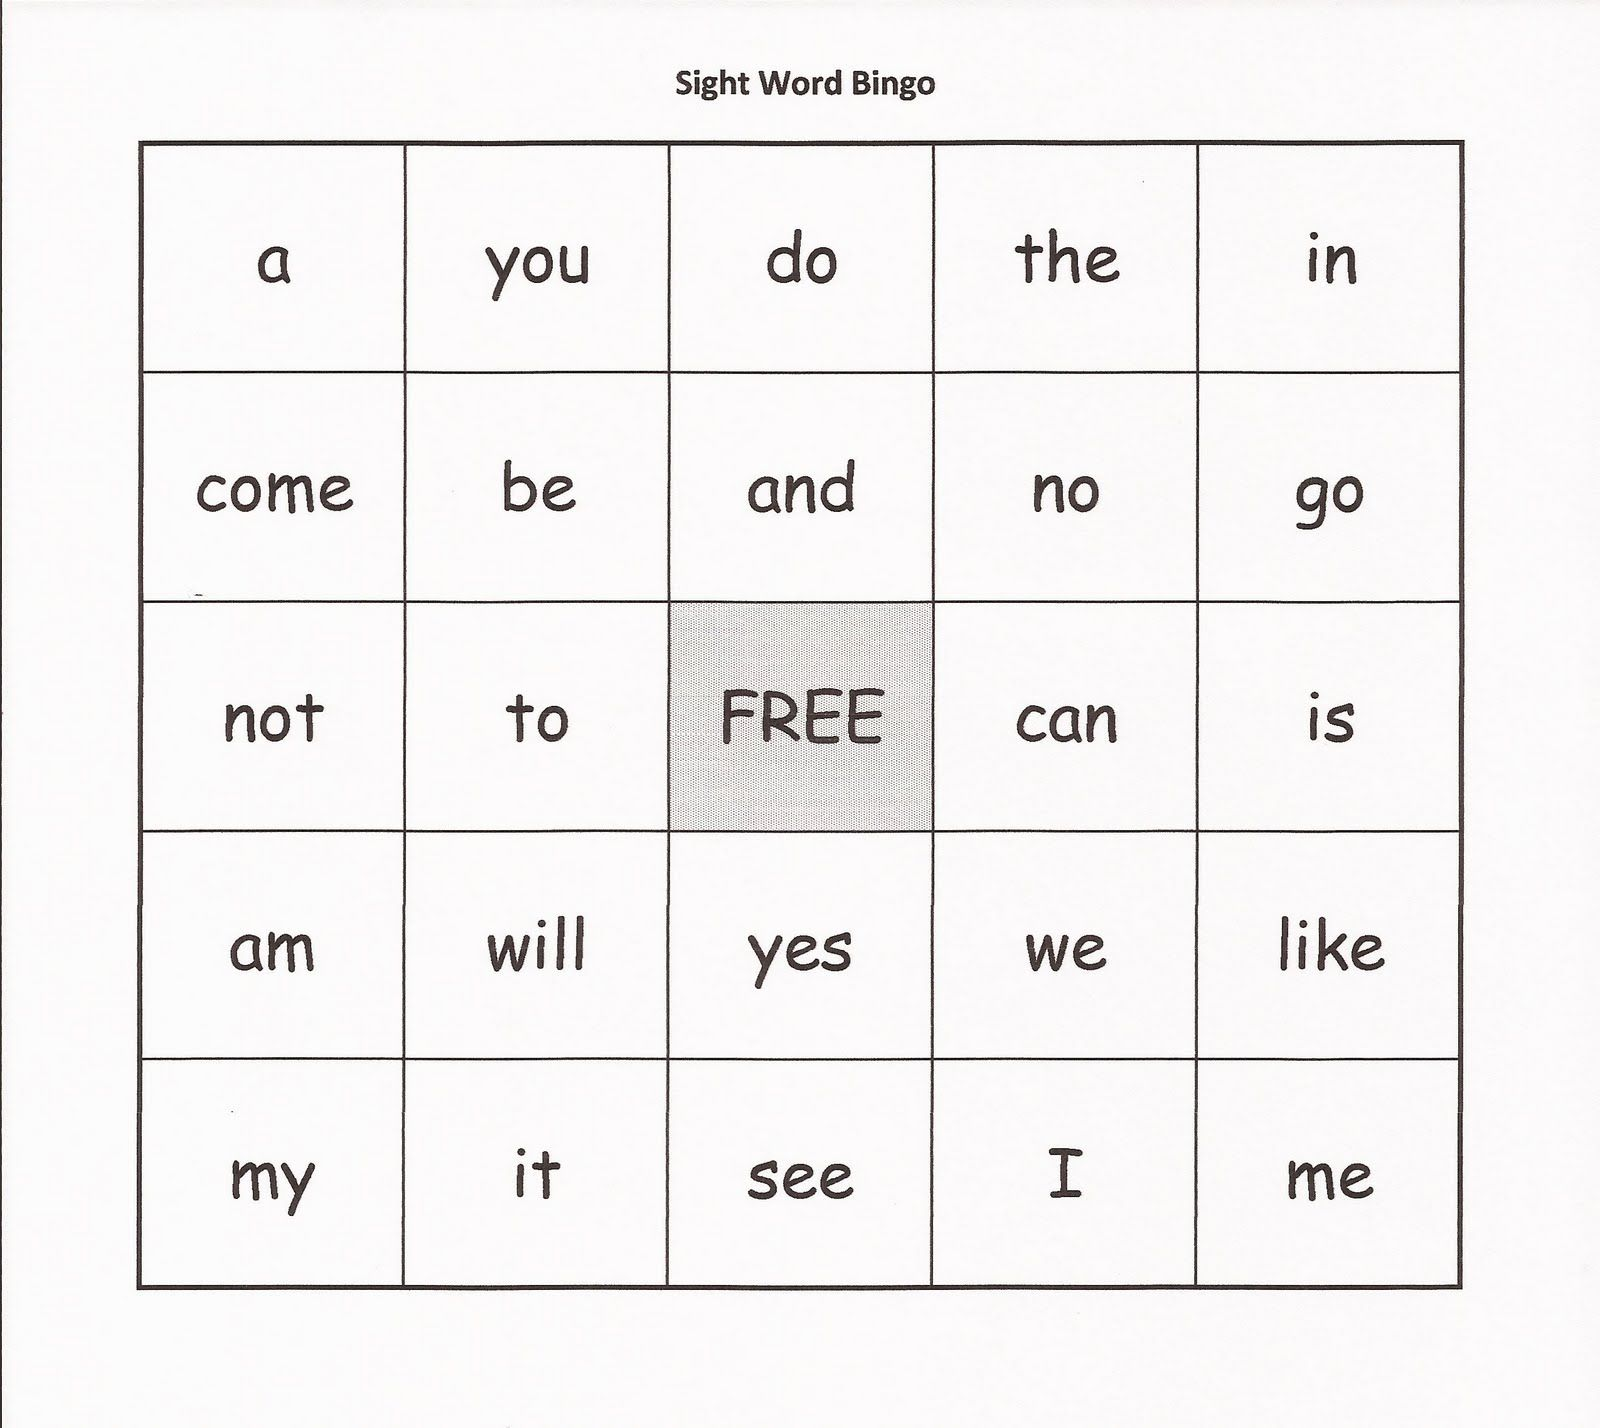 worksheet Preschool Sight Words worksheet sight words preschool wosenly free mikyu for pre k images guru alfa